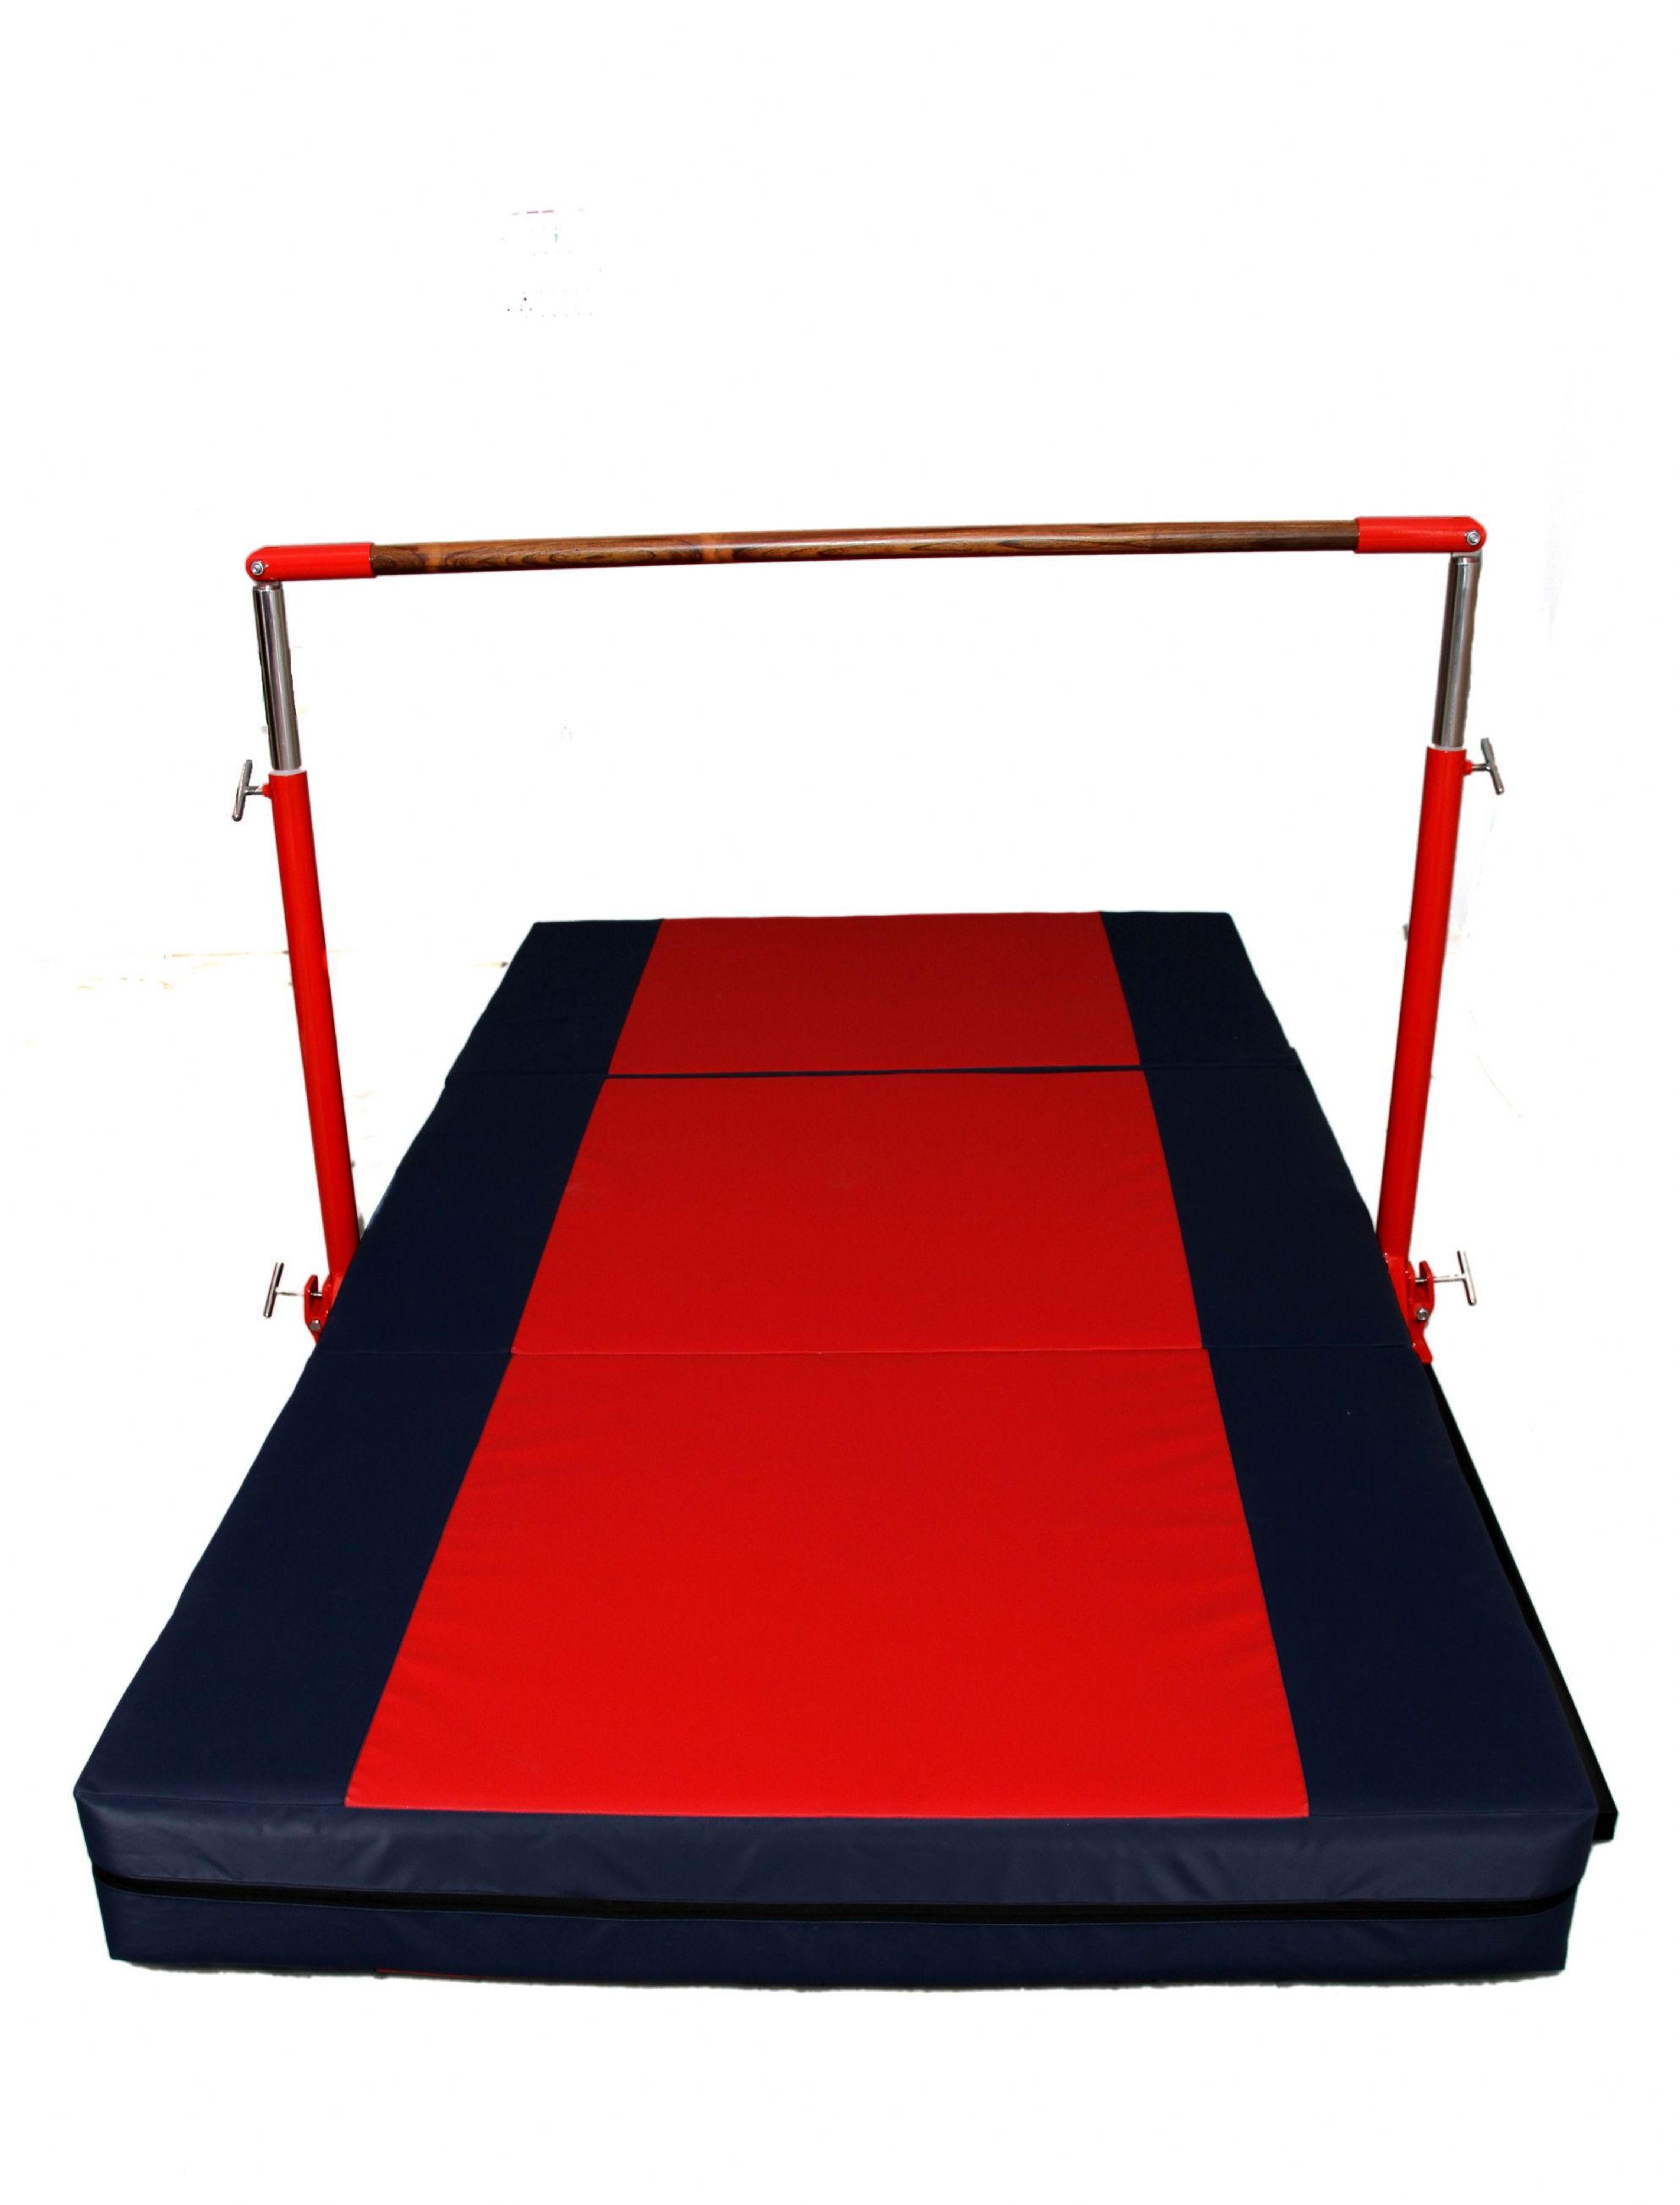 agility mats cheap mat web gym gymnastics product promat